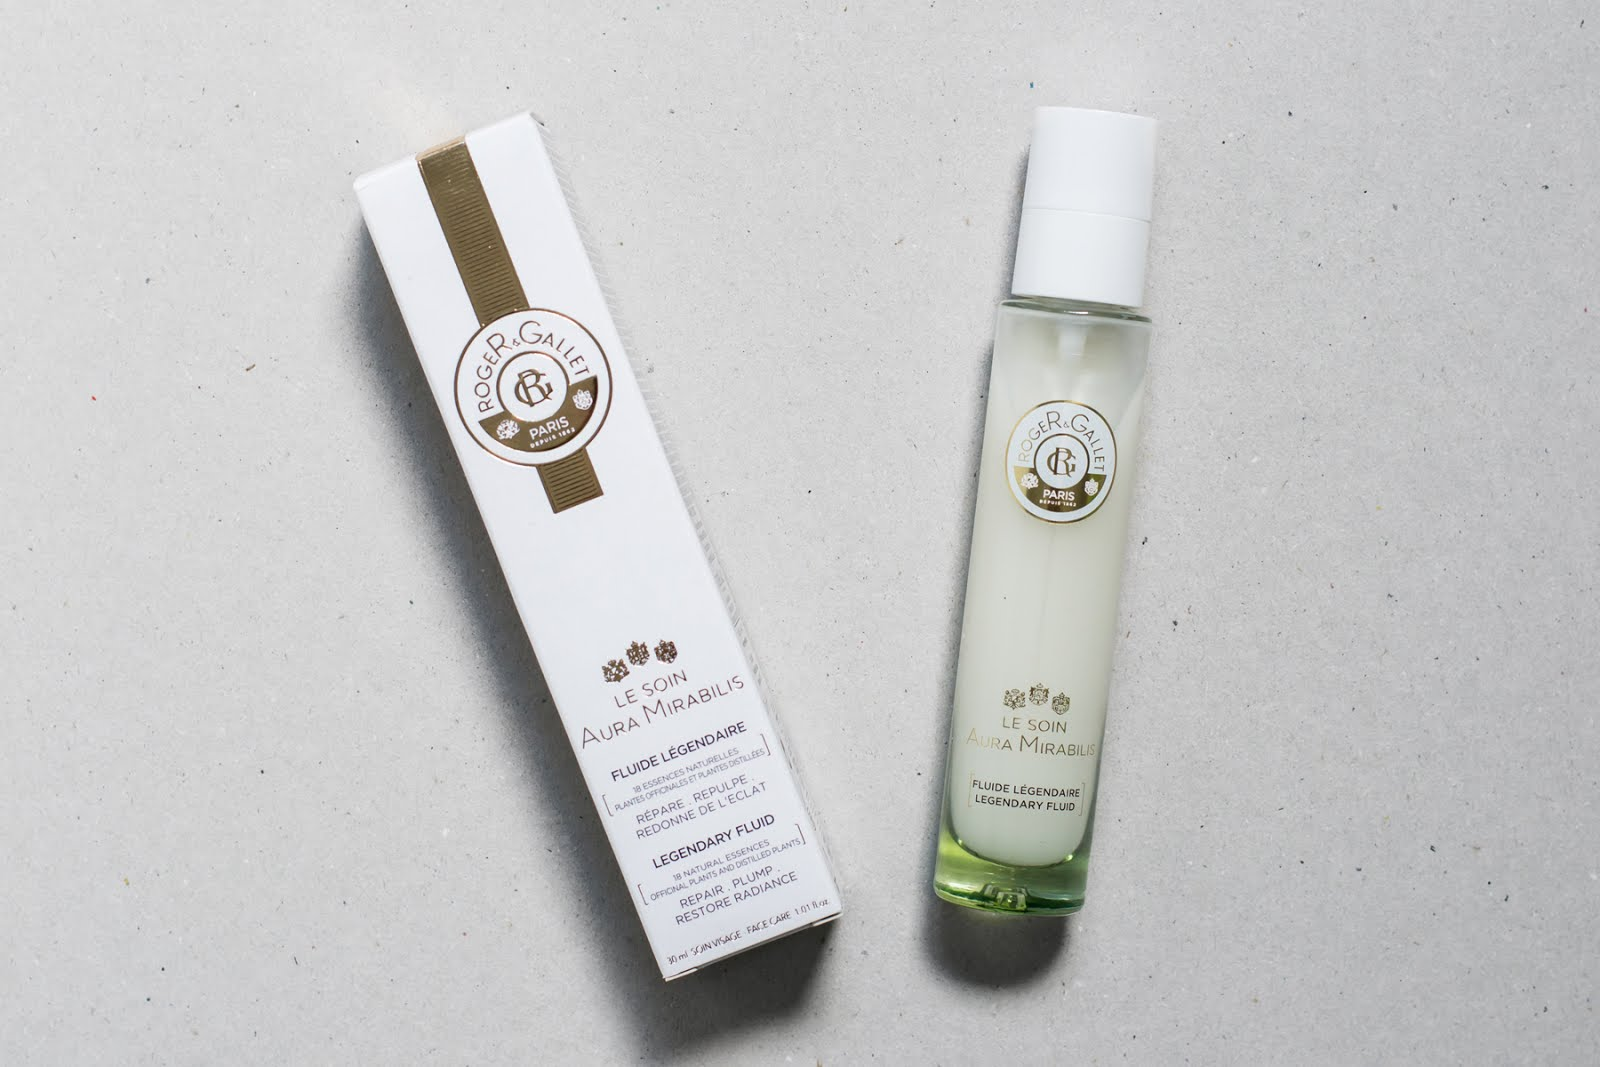 Roger & gallet, le soin aura mirabilis, legendary fluid, beauty vinegar, tonic, new pharma